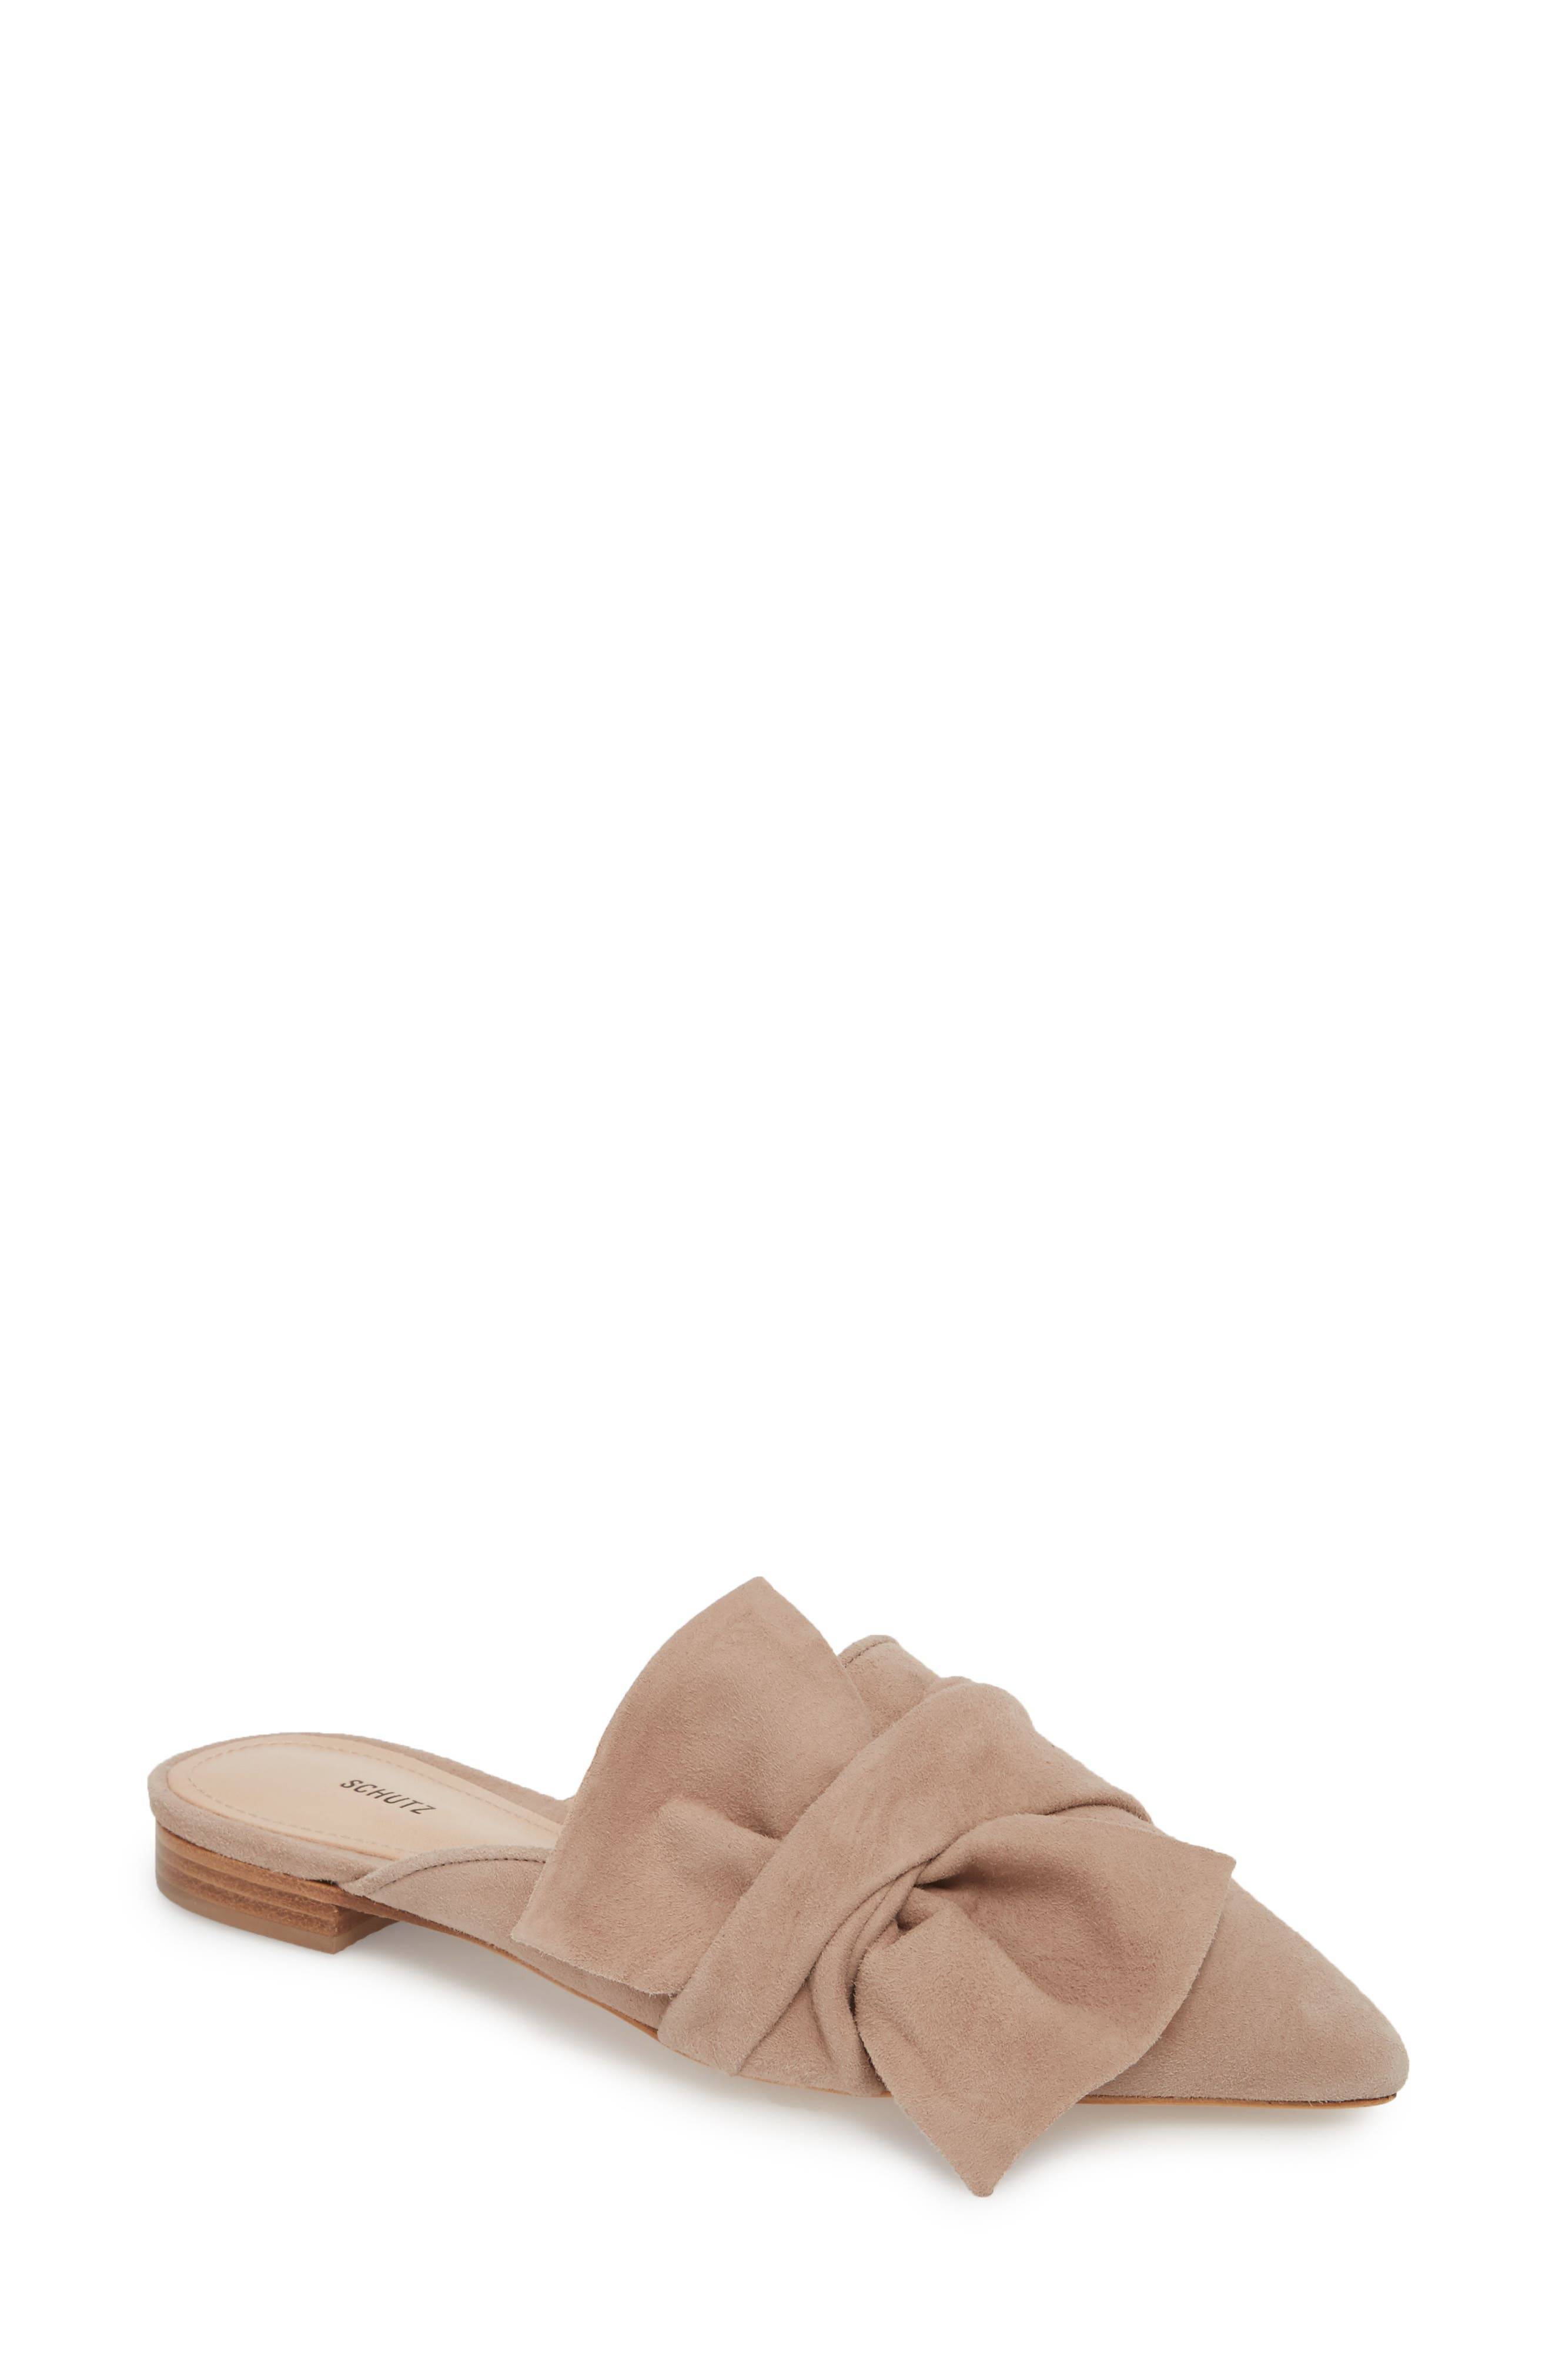 D'Ana Knotted Loafer Mule,                         Main,                         color, NEUTRAL SUEDE